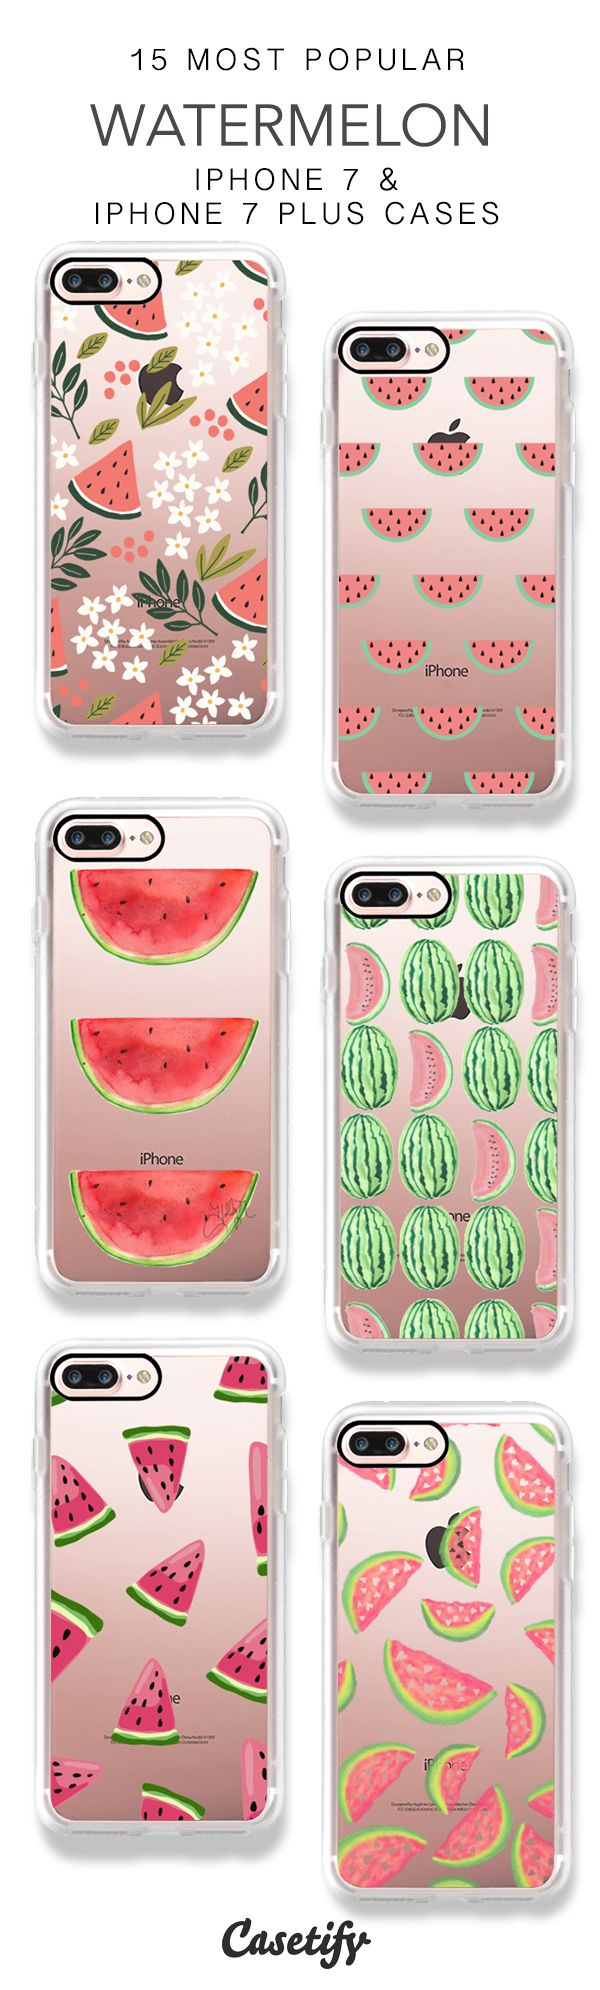 15 Most Popular Sweet Watermelon iPhone 7 Cases & iPhone 7 Plus Cases here > https://www.casetify.com/artworks/EsPBdqKH9f http://amzn.to/2rwqPgY